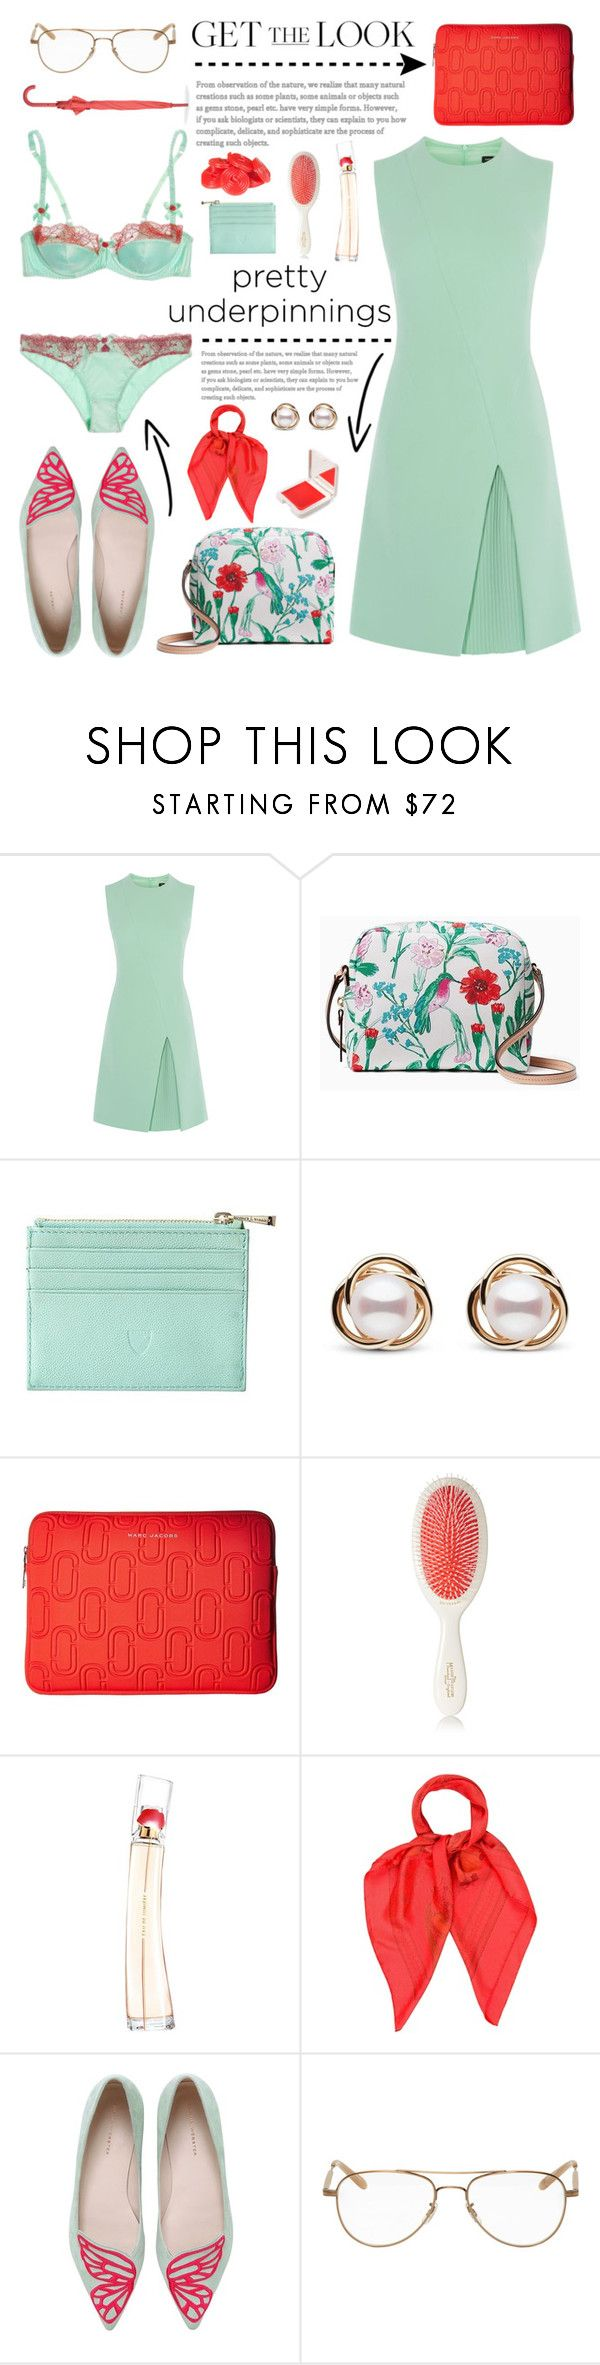 """The Prettiest Underpinnings"" by glamorous09 ❤ liked on Polyvore featuring Kate Spade, Aspinal of London, Trilogy, Marc Jacobs, Mason Pearson, Kenzo, Hermès, Sophia Webster, Garrett Leight and LEXON"